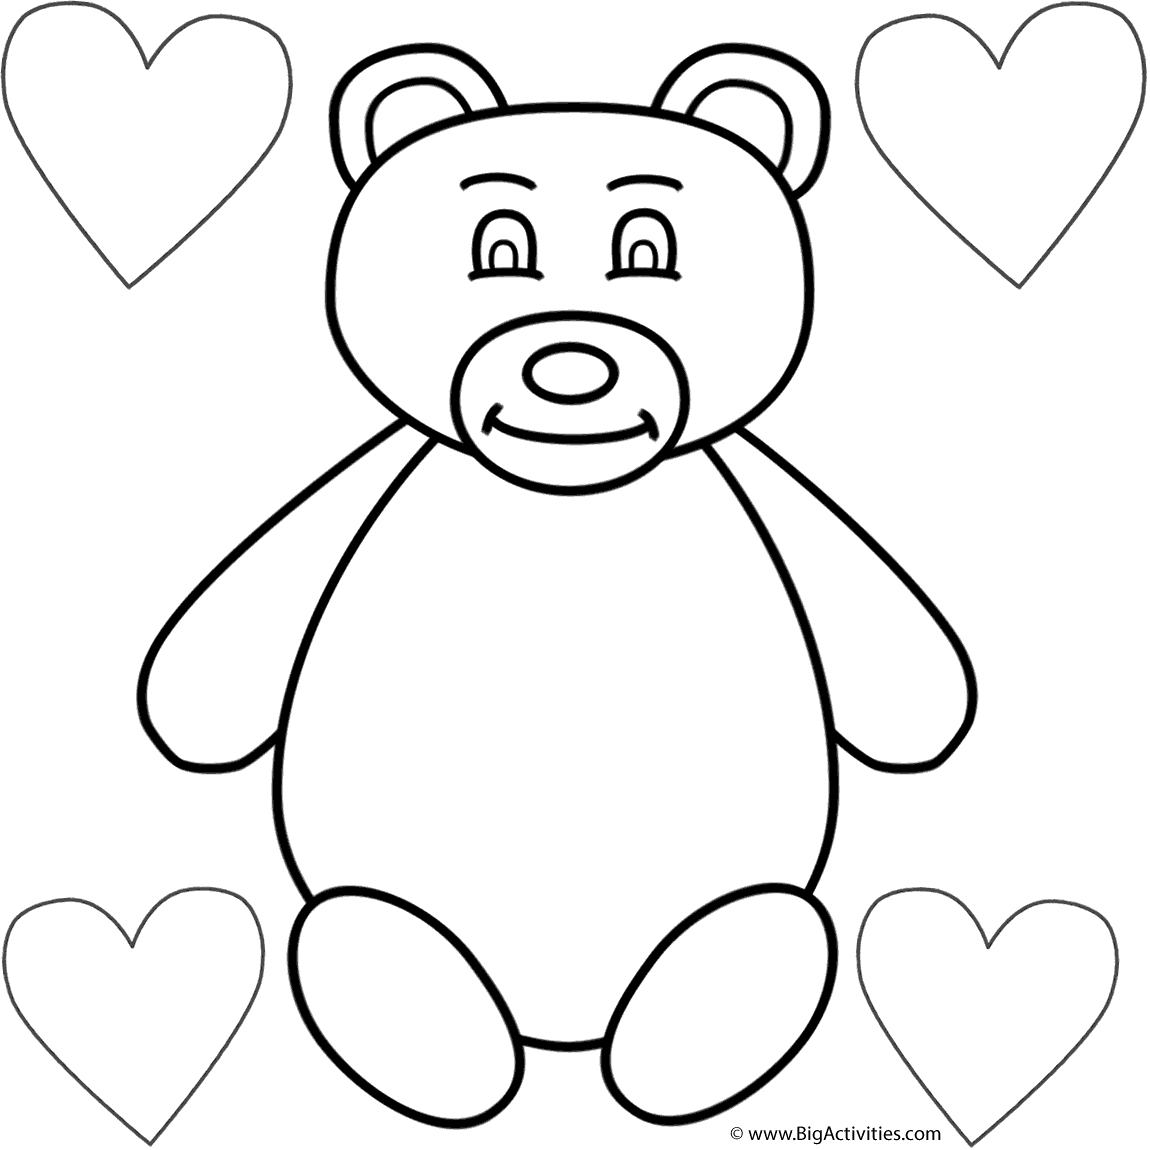 teddy bear heart coloring pages - photo#10